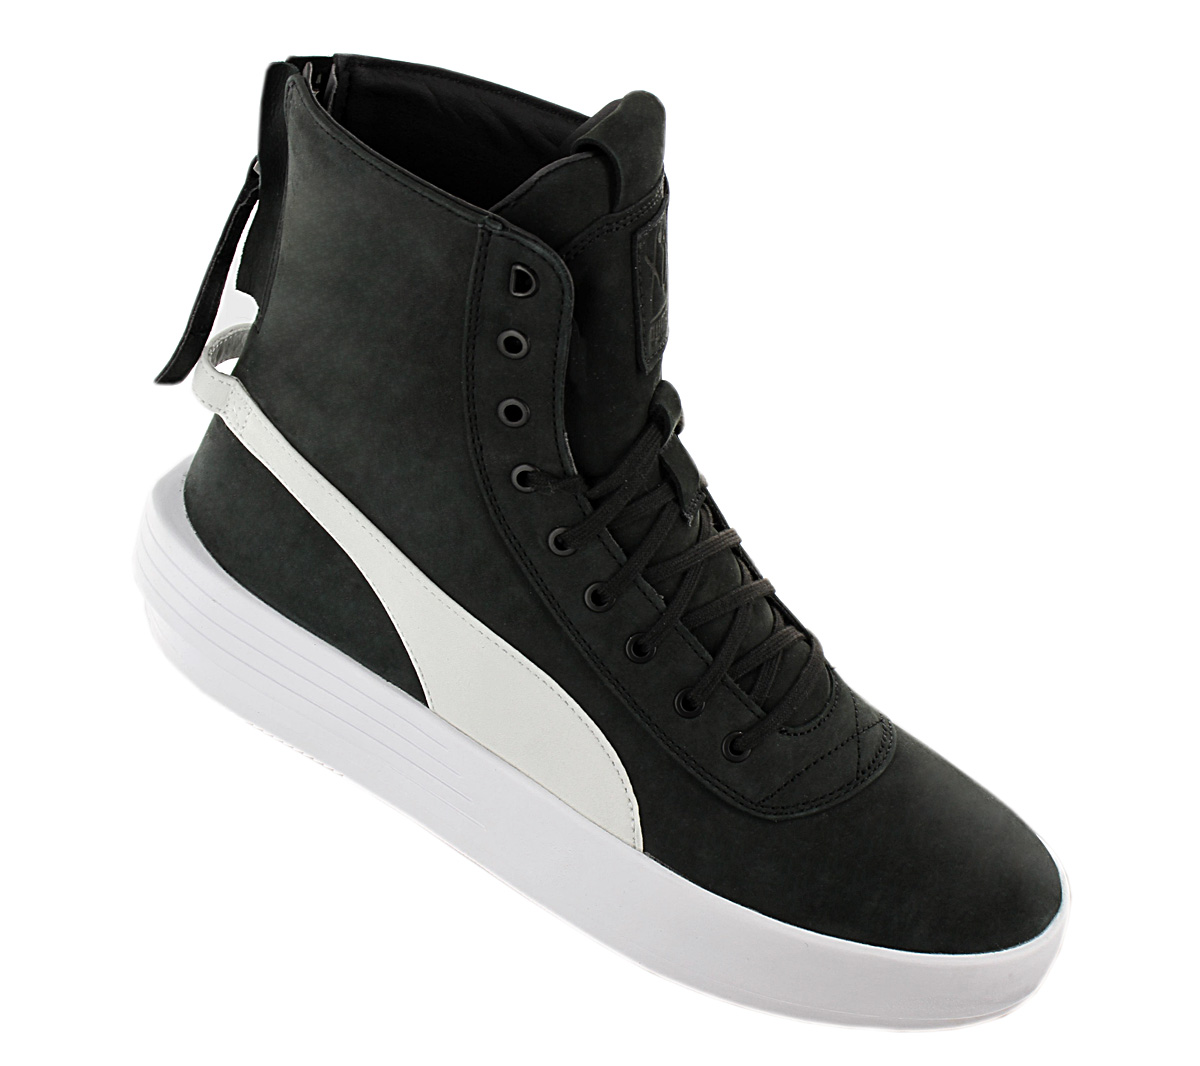 Details about Puma Xo Parallel x the Weeknd Men's Sneaker Boots 365039 05 Black Leather New